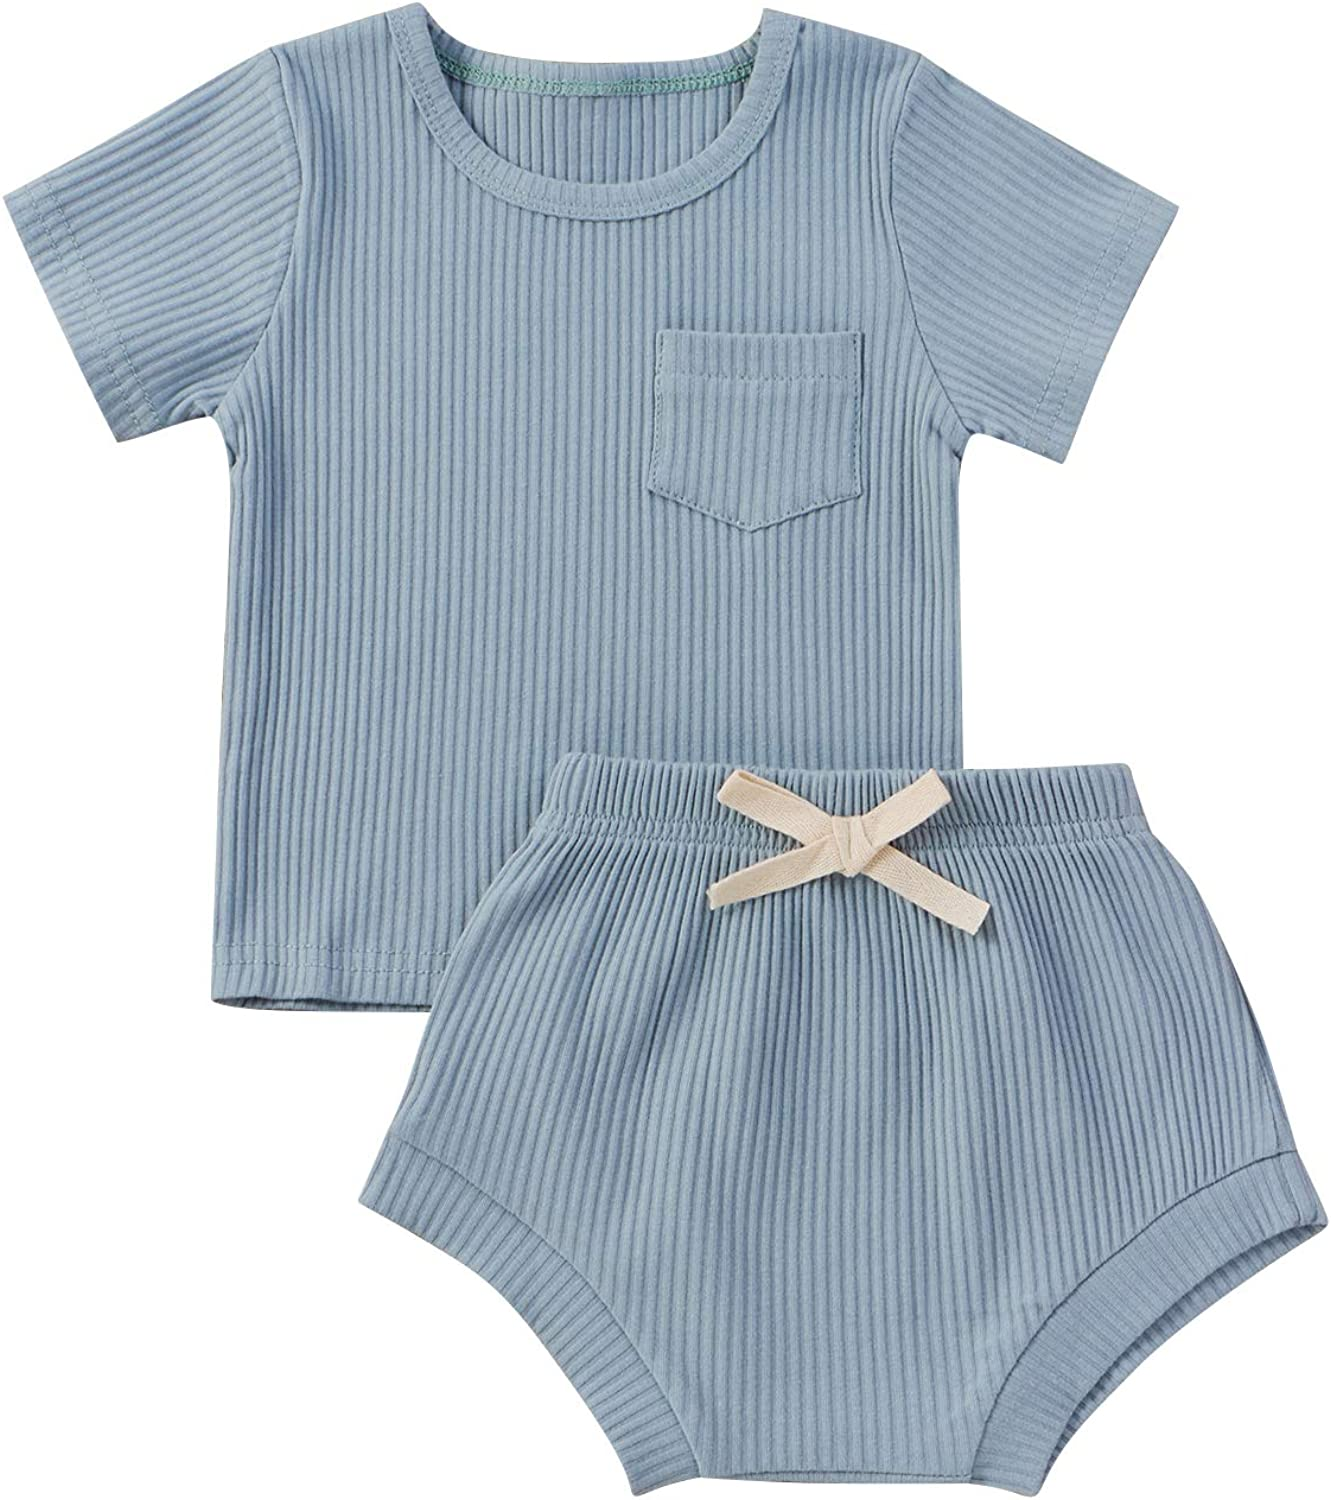 Toddler Baby Boy Girl Outfit Solid Pocket Ribbed Top T-Shirt and Shorts Summer Clothes Set